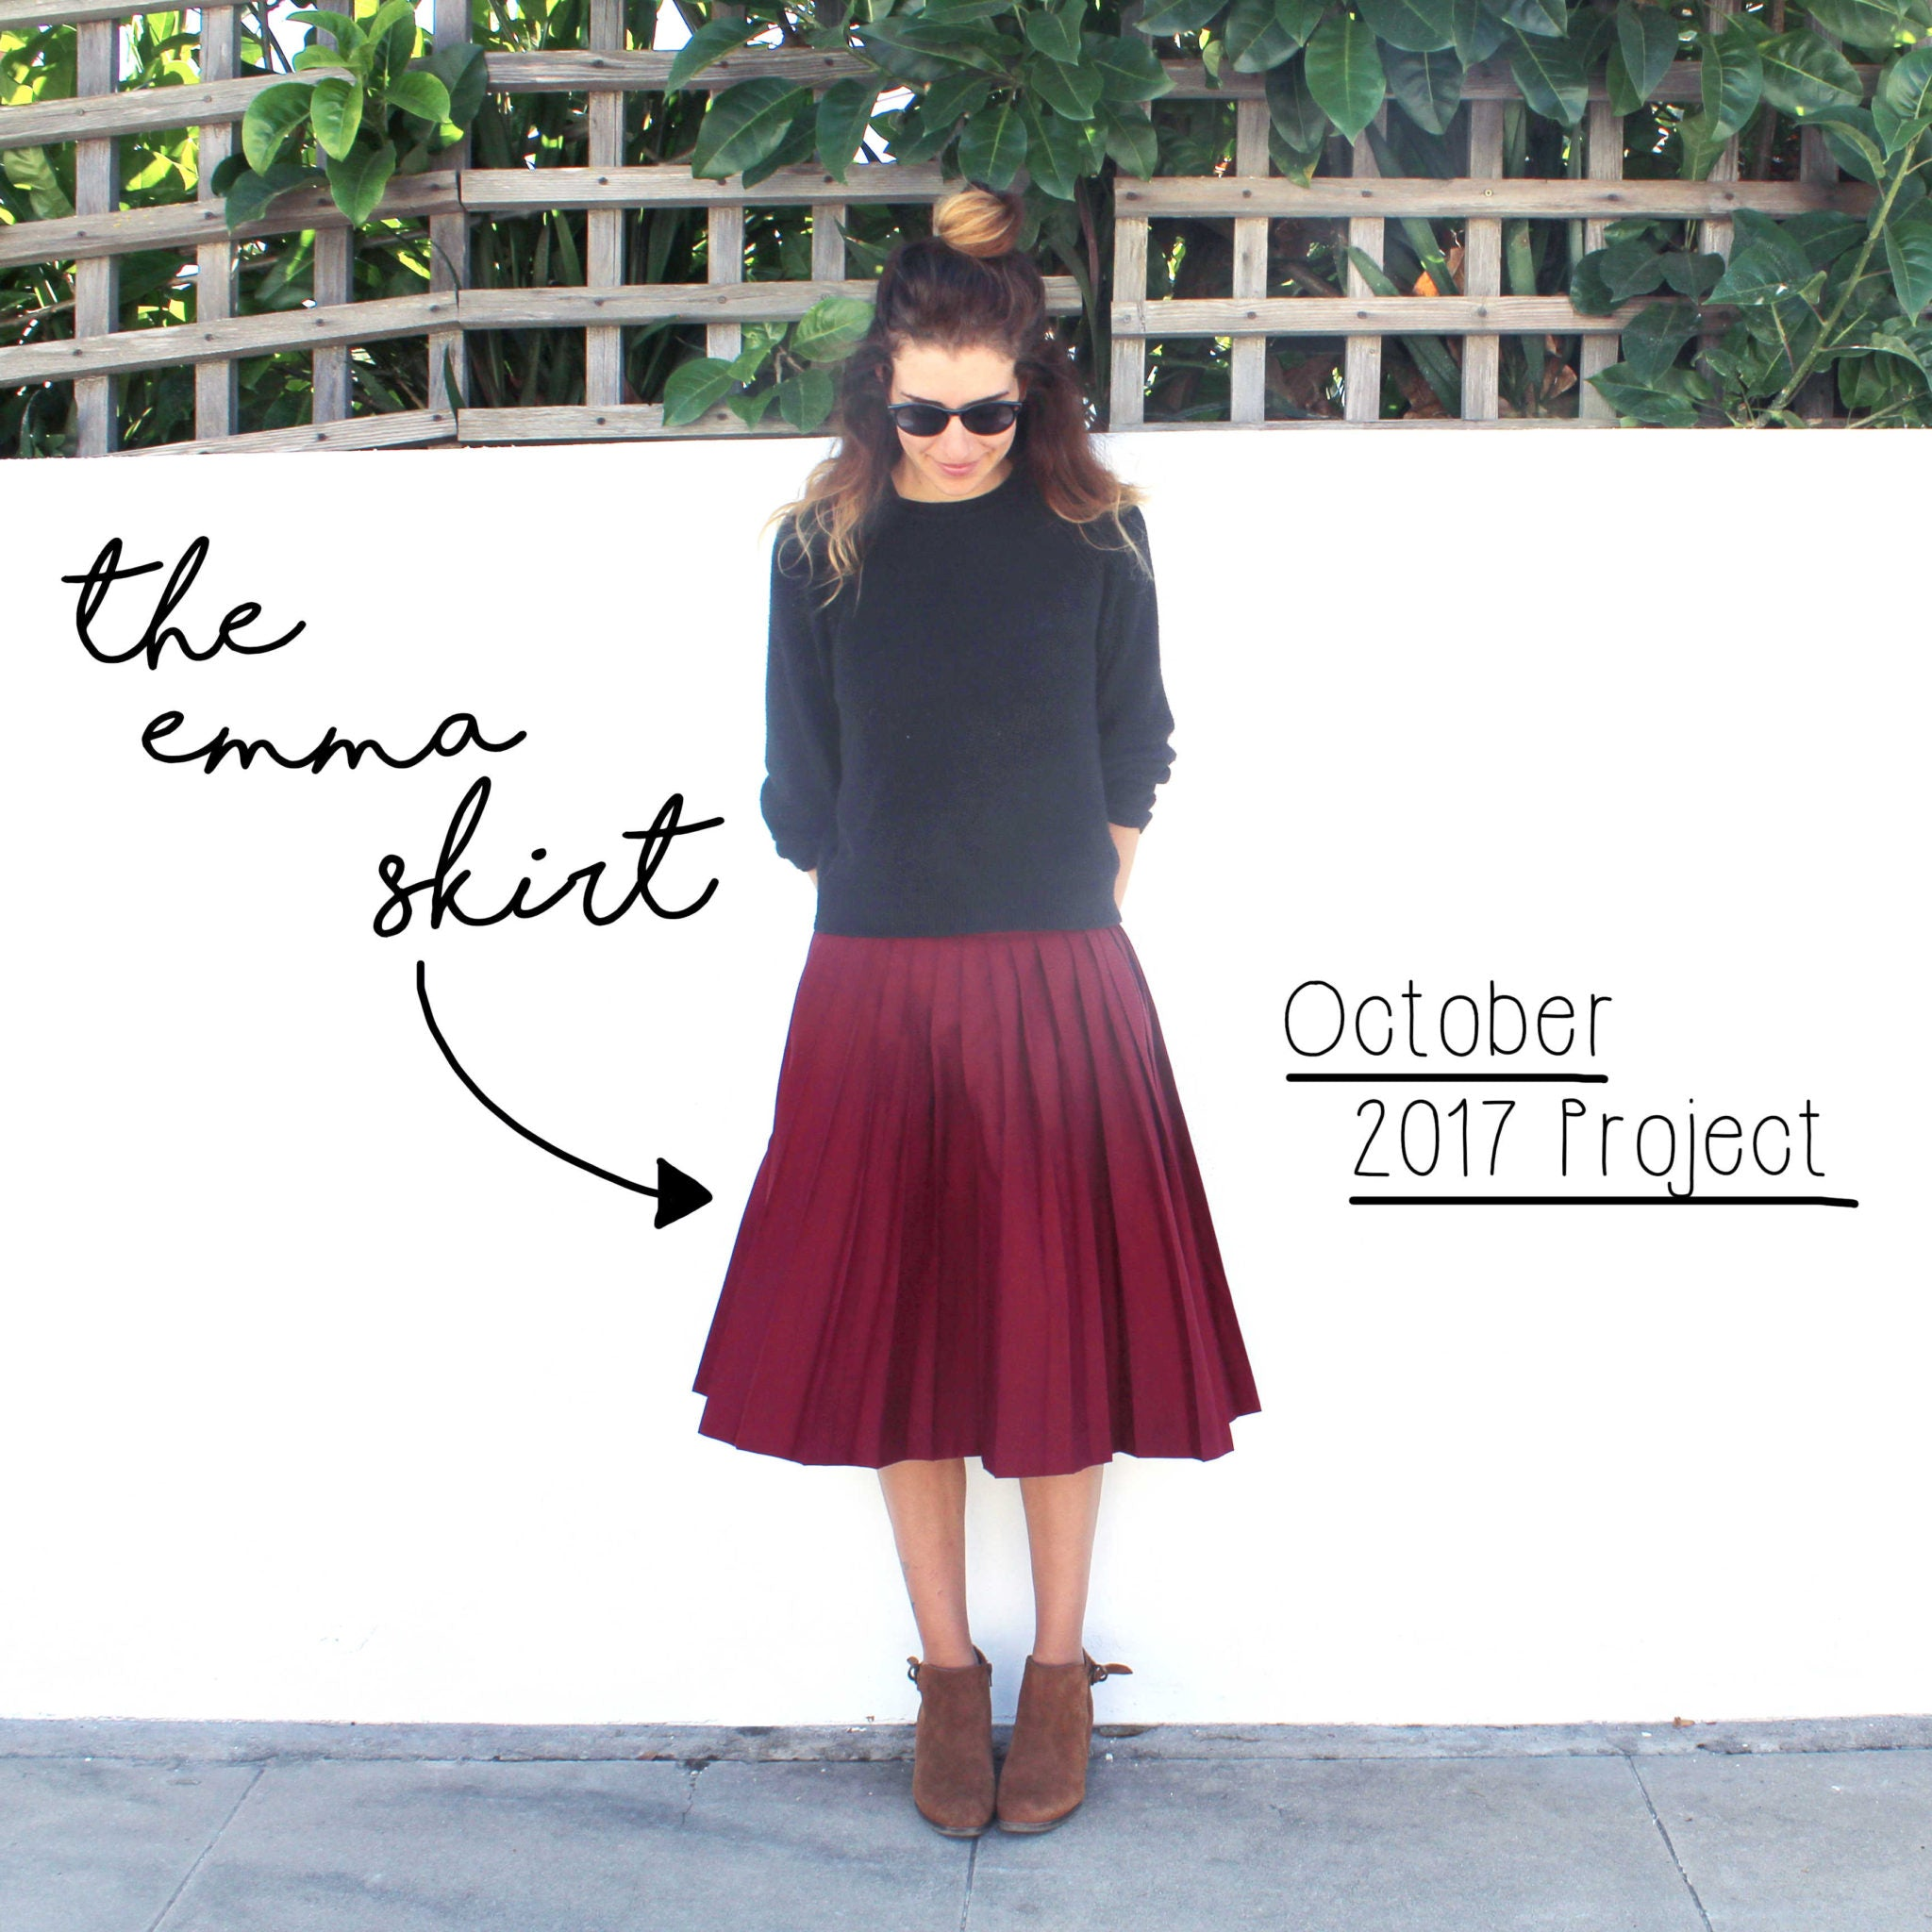 The Flora Modiste Easy Sewing Projects Introduction: The Emma Skirt